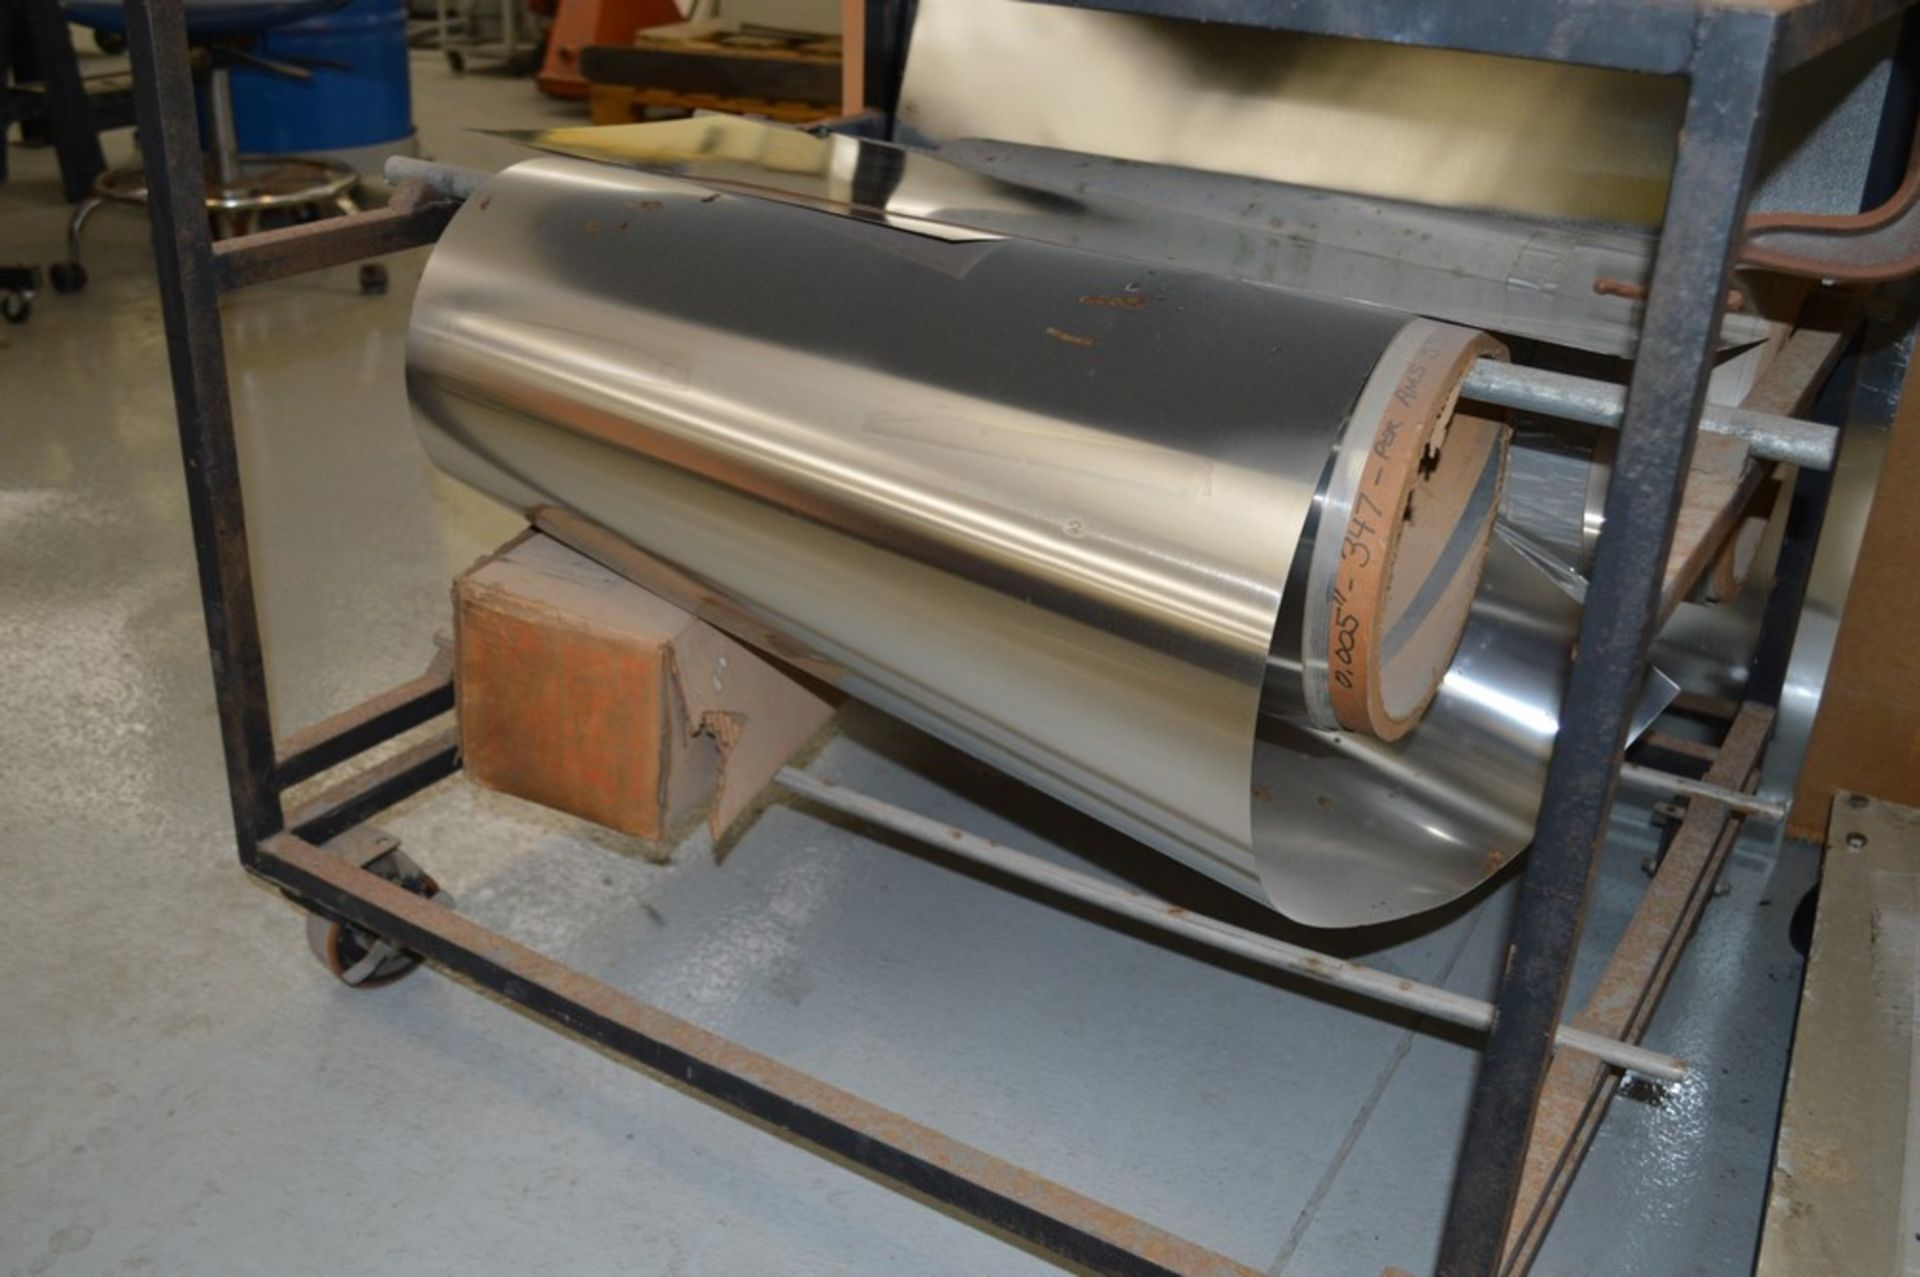 1995 Combined Manual Shear and Break black metal stand, metal rolls, (4 Each) Henrich/Pexto Model- - Image 5 of 8